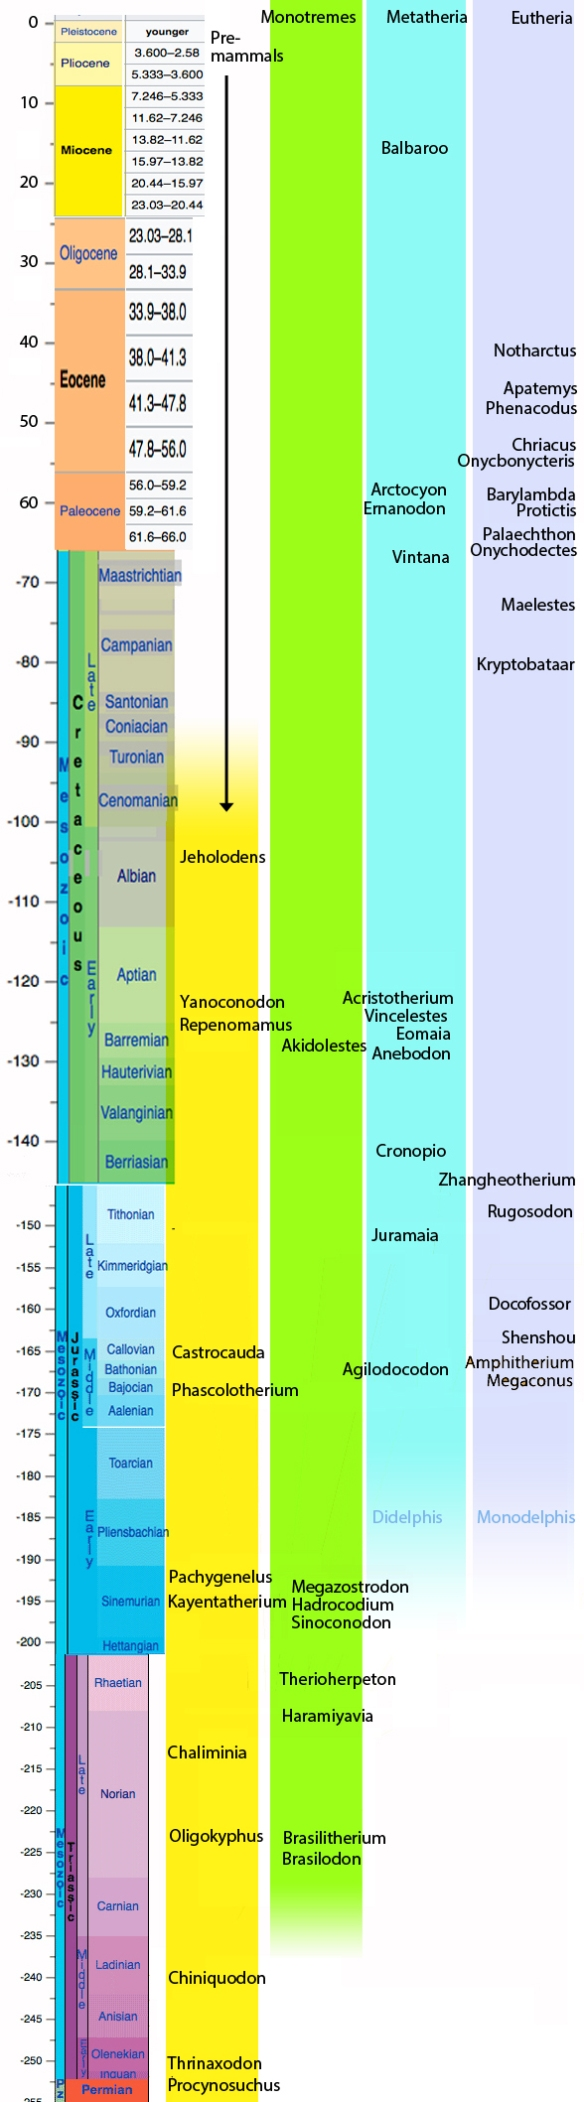 Figure 2. Select basal cynodonts and mammals set chronologically. The divergence times for placentals (Eutheria), marsupials (Metatheria) and monotremes (Mammalia) are estimated here.